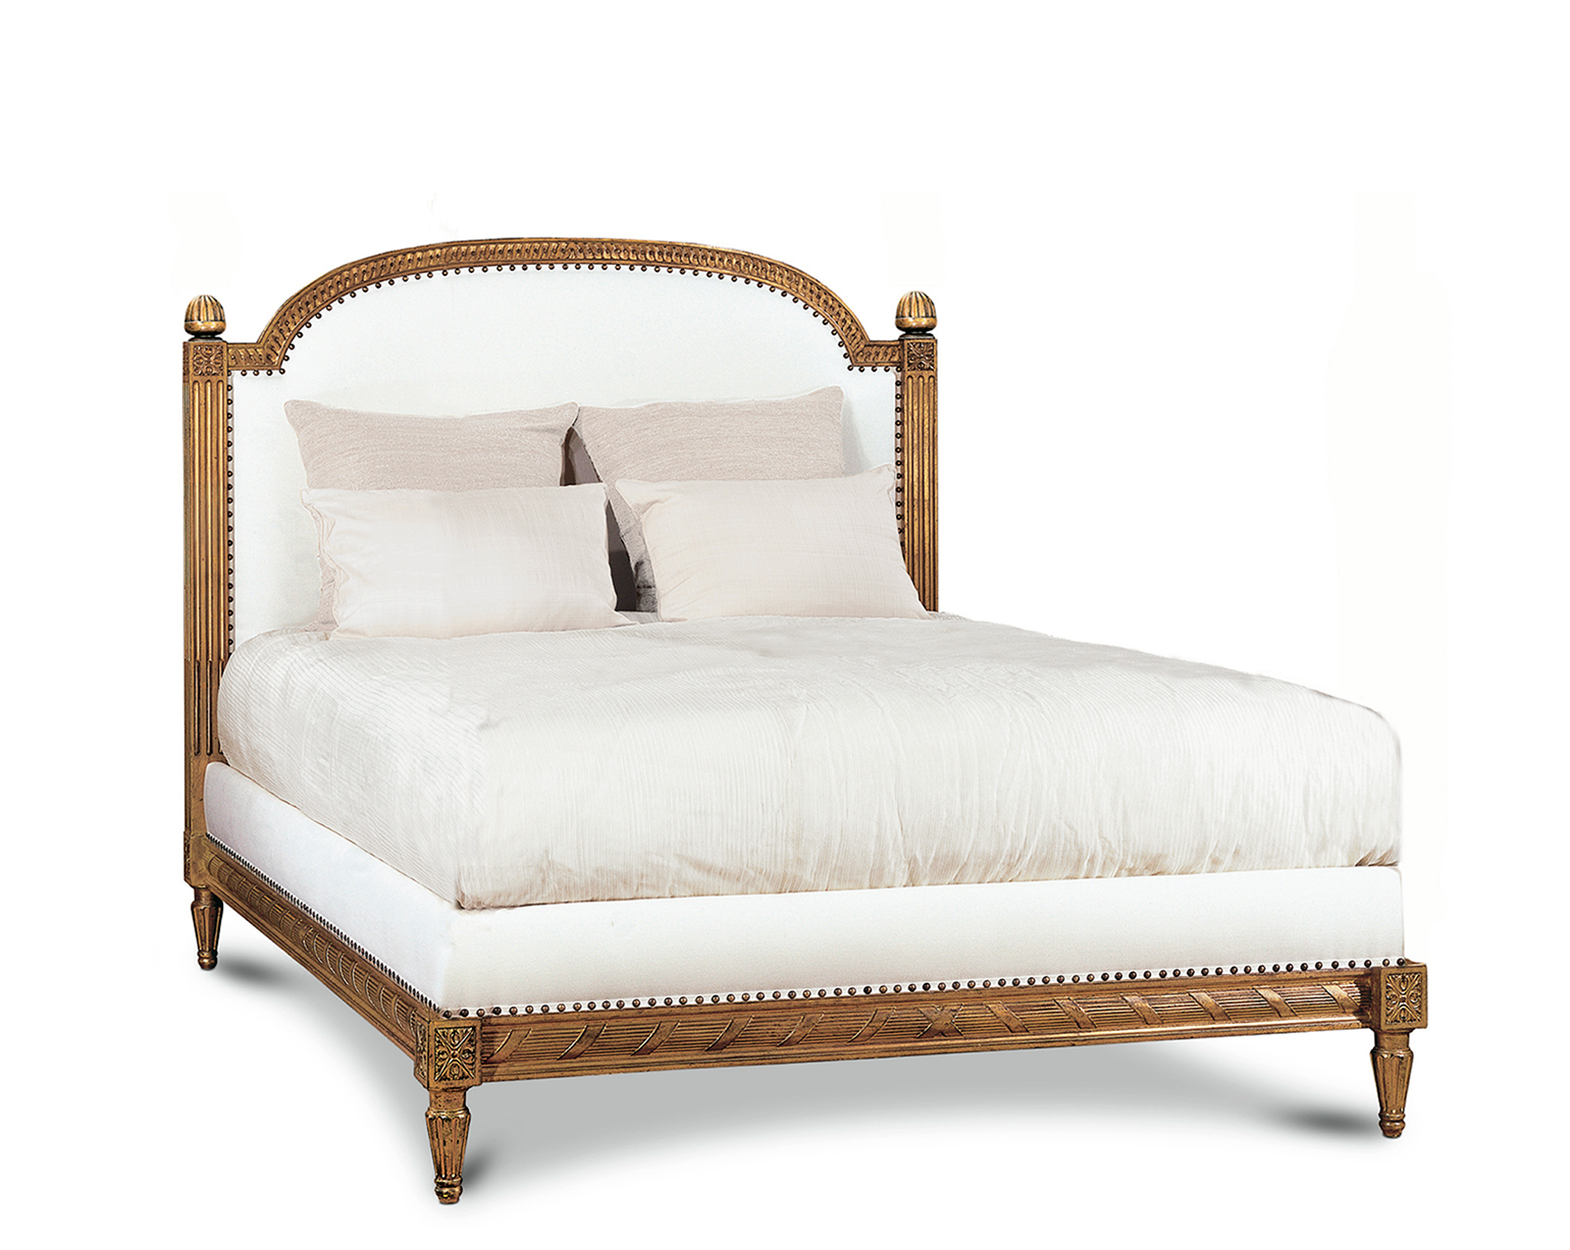 LOUIS XVI BED WITHOUT FOOTBOARD QUEEN